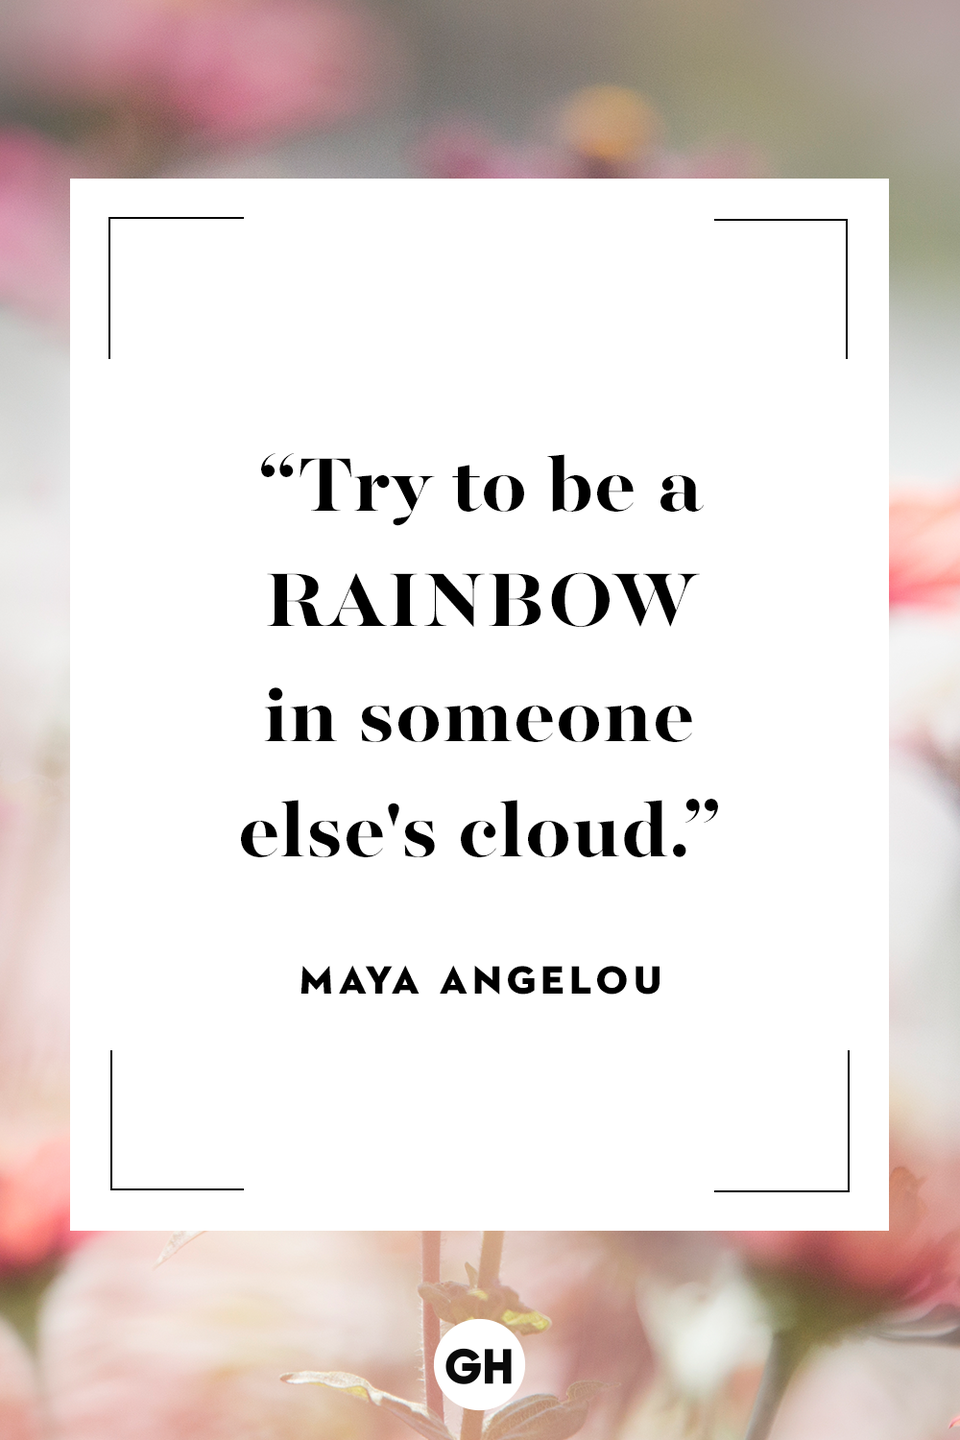 <p>Try to be a rainbow in someone else's cloud.</p>